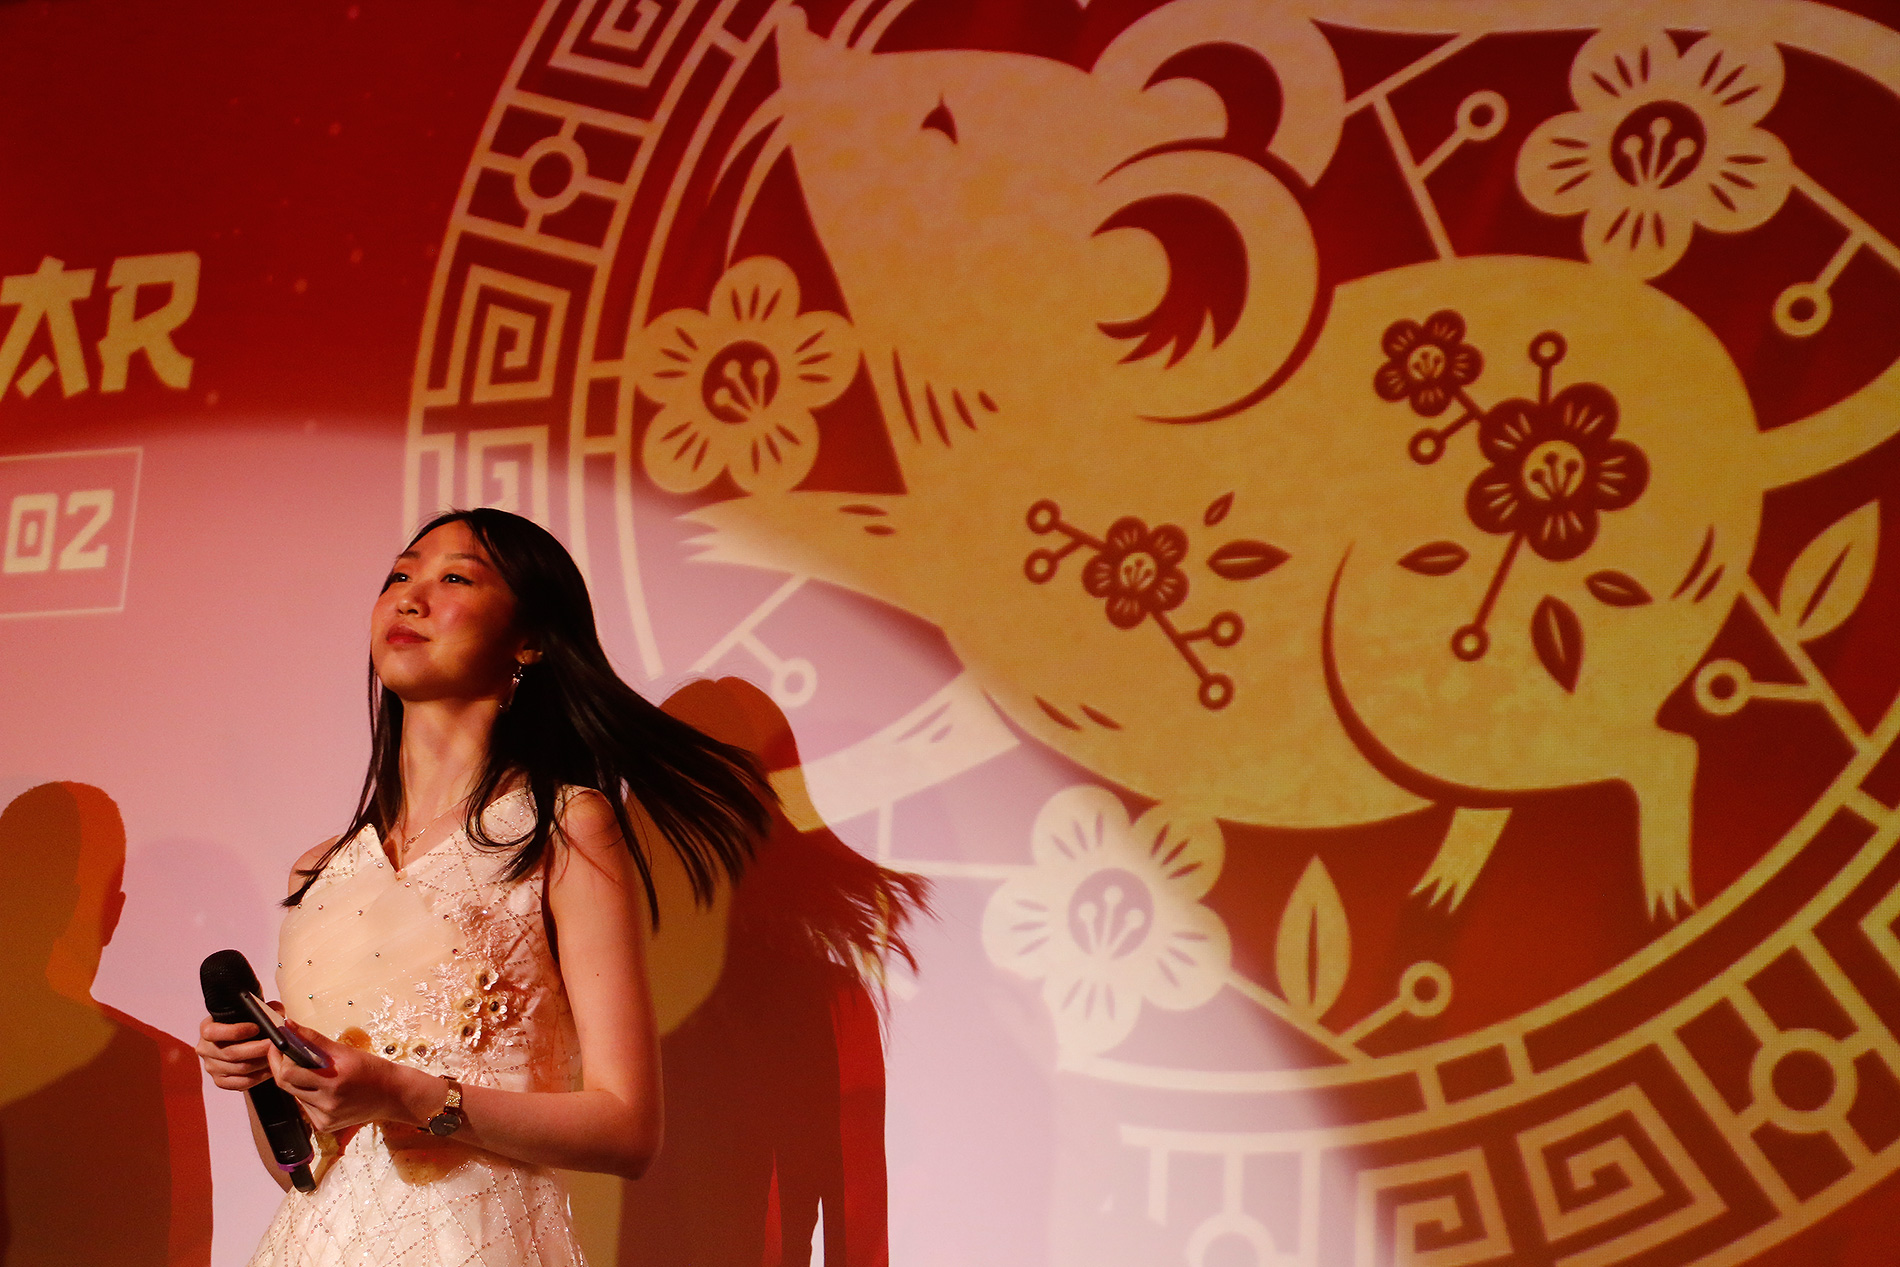 2020 is the Year of the Rat in the Chinese zodiac. In China, rats were seen as a sign of wealth and surplus. Picture: Tony Öhberg for Finland Today